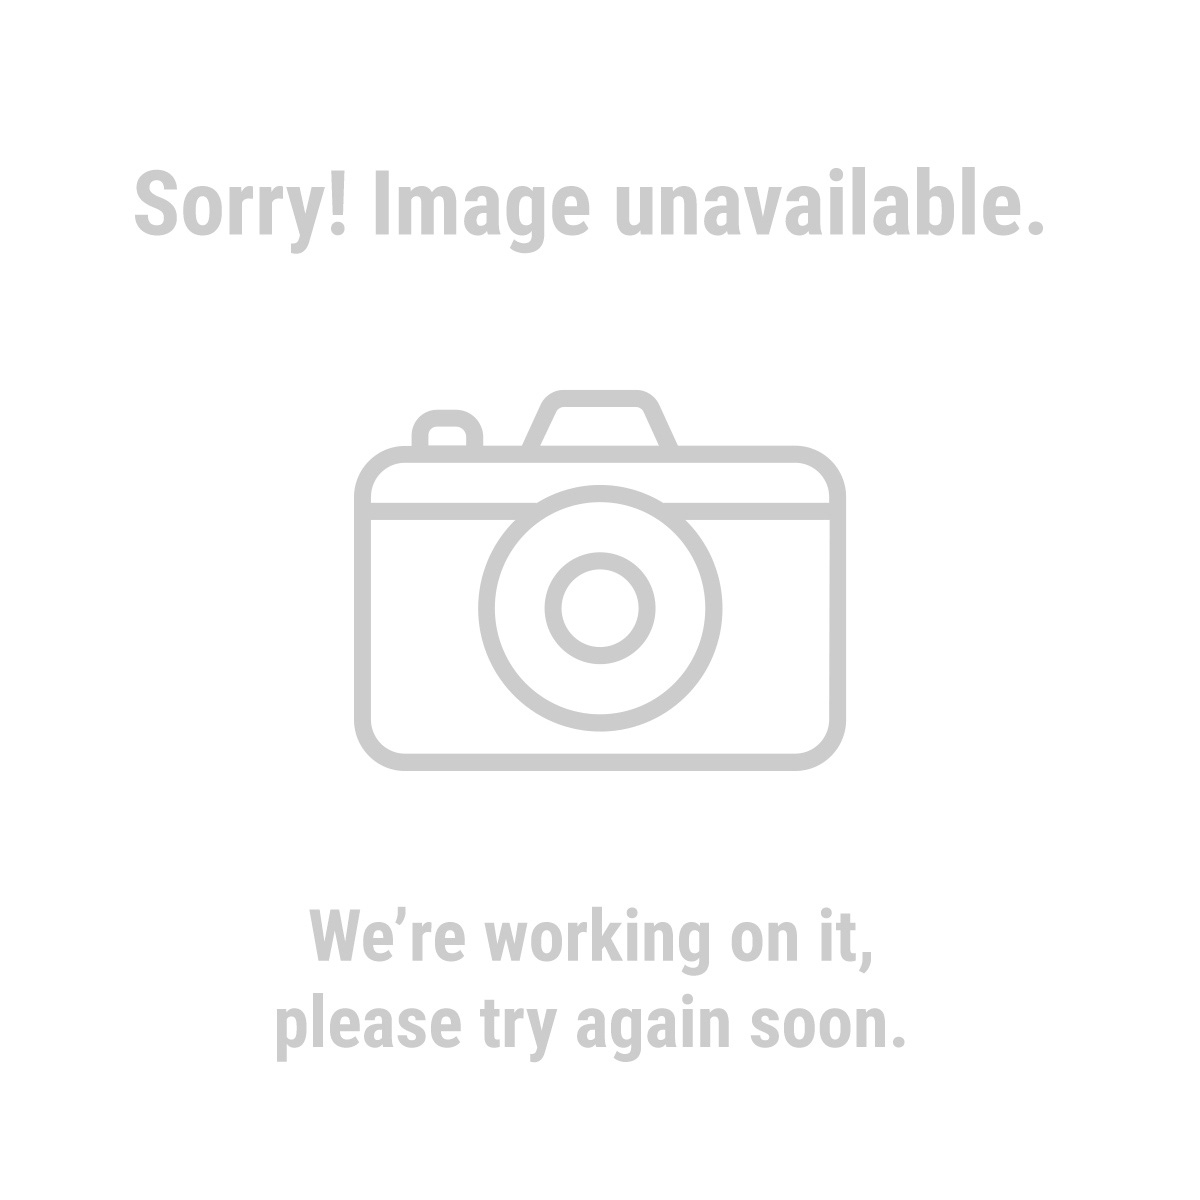 Pittsburgh 93922 7 Piece Metric Stubby Ratcheting Combo Wrench Set